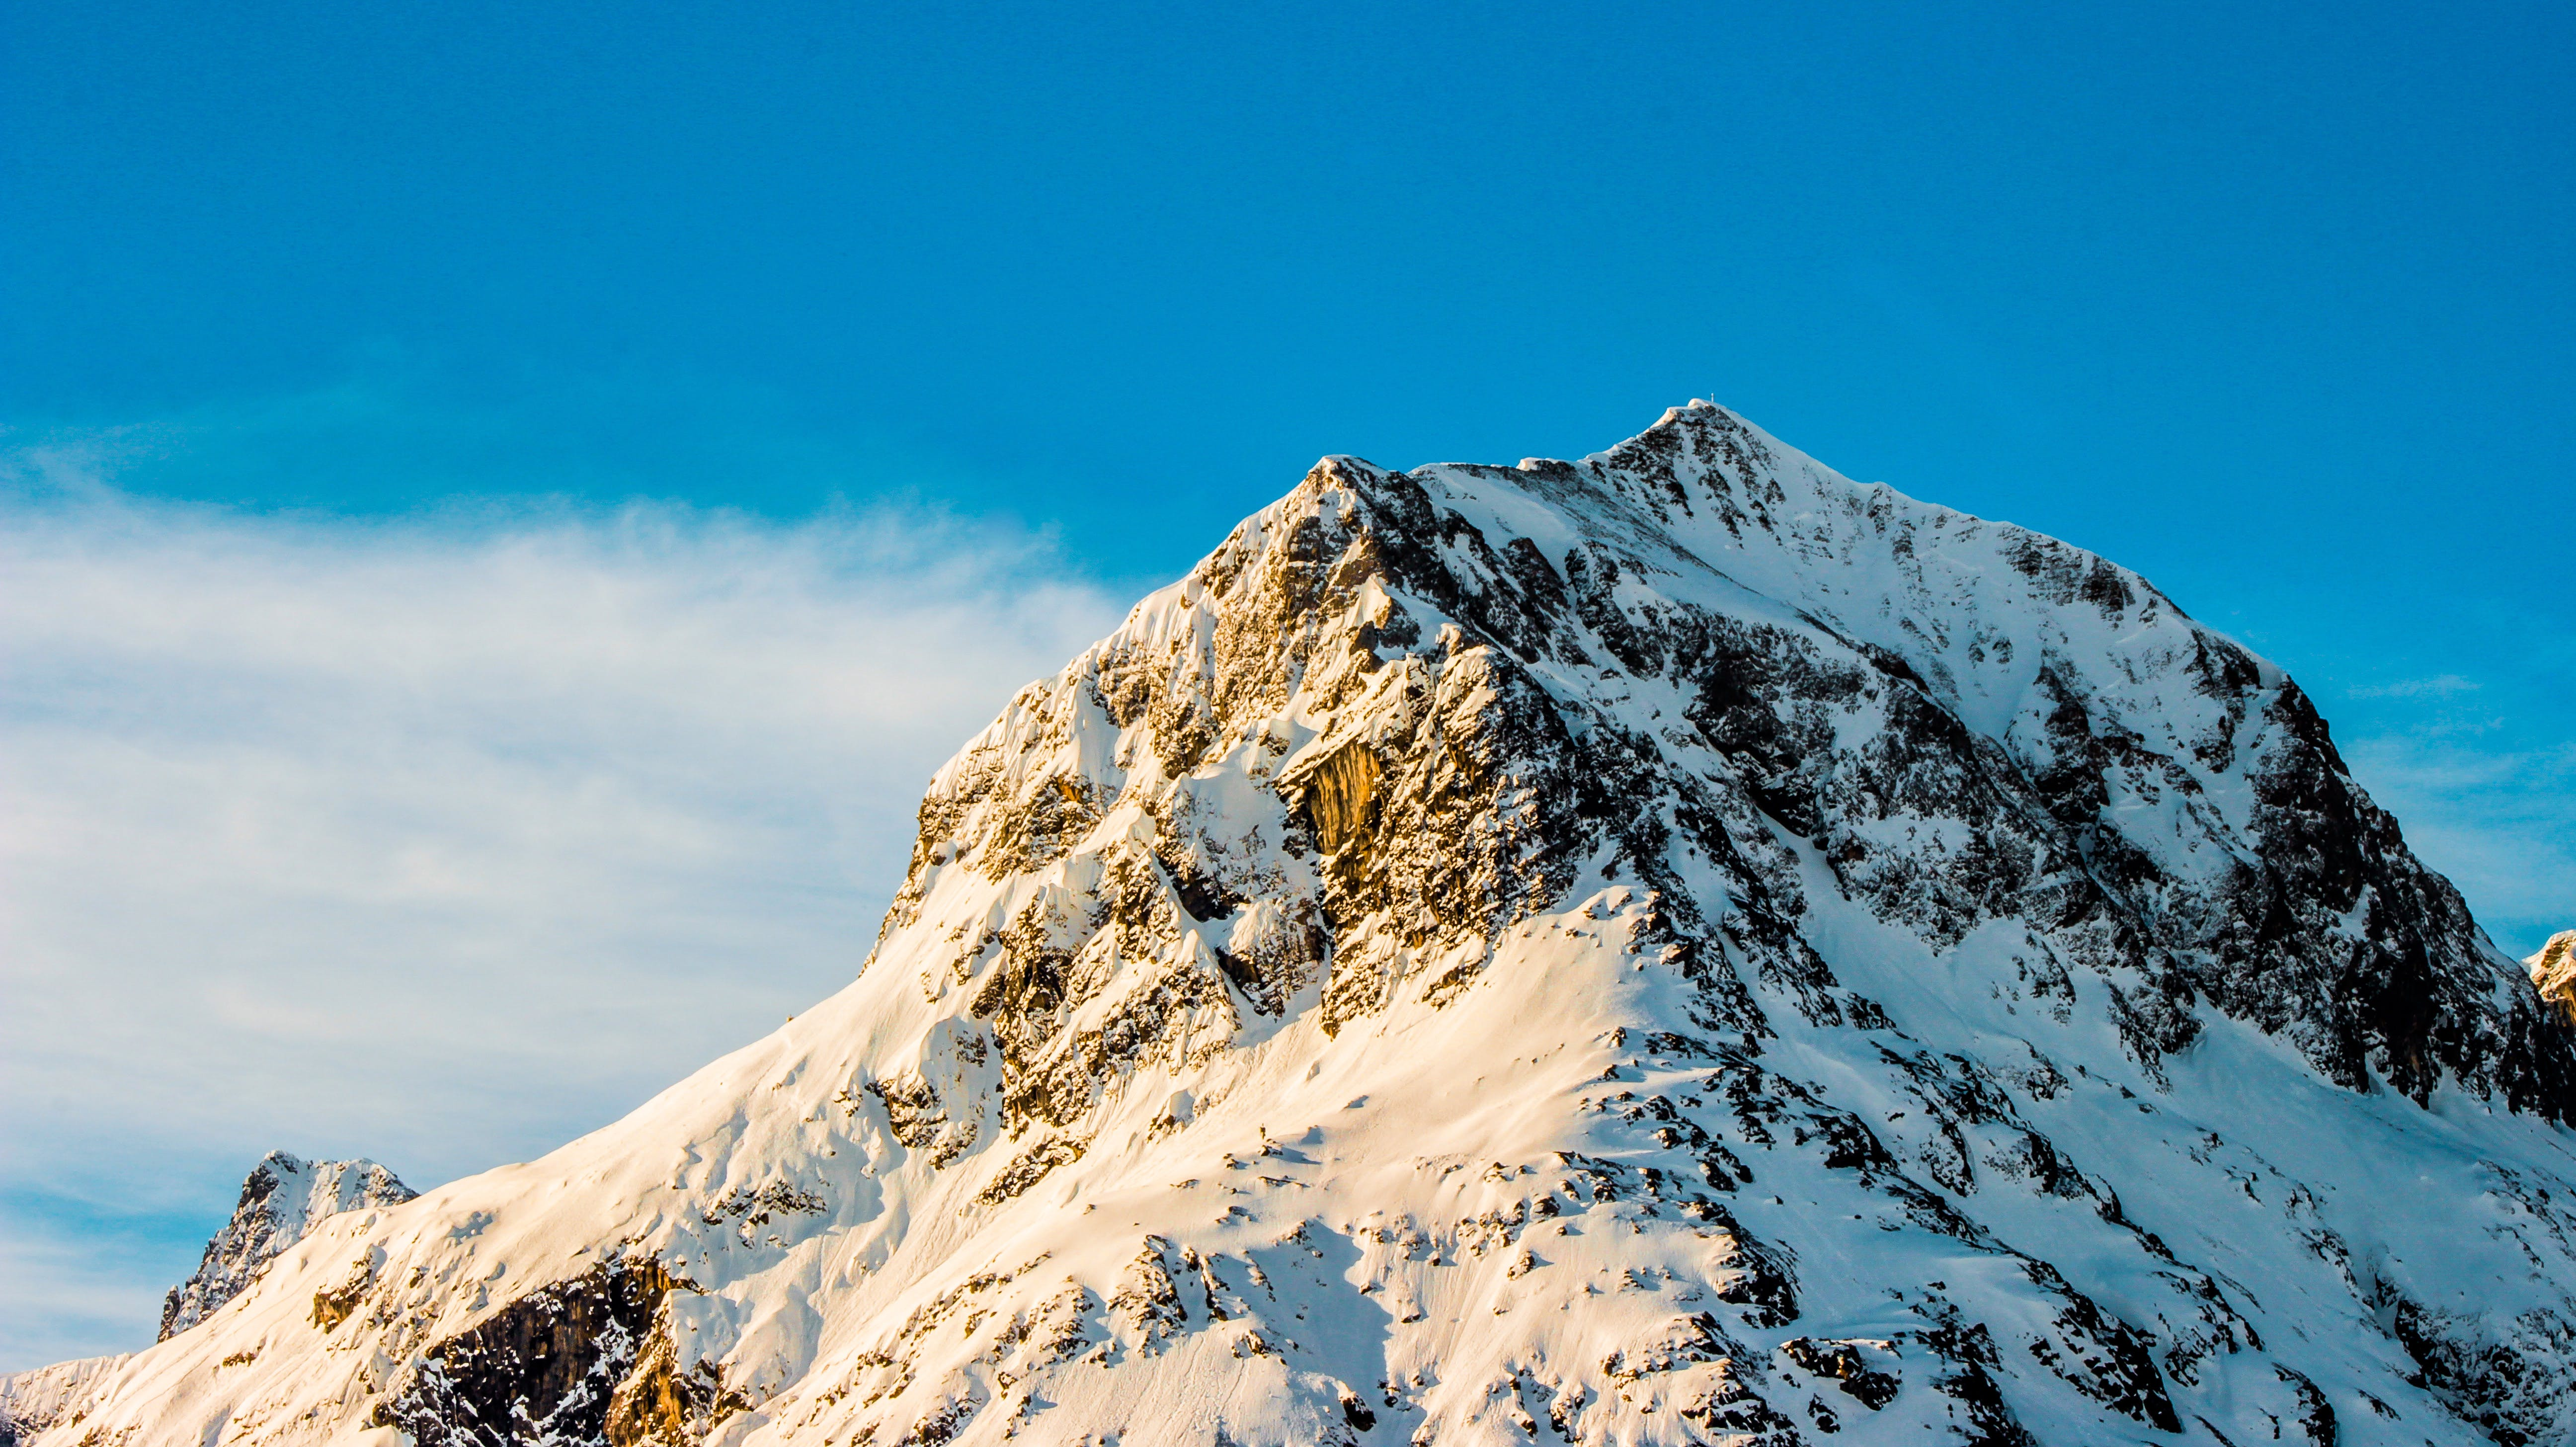 Snow Covered Mountain Under Clear Blue Sky